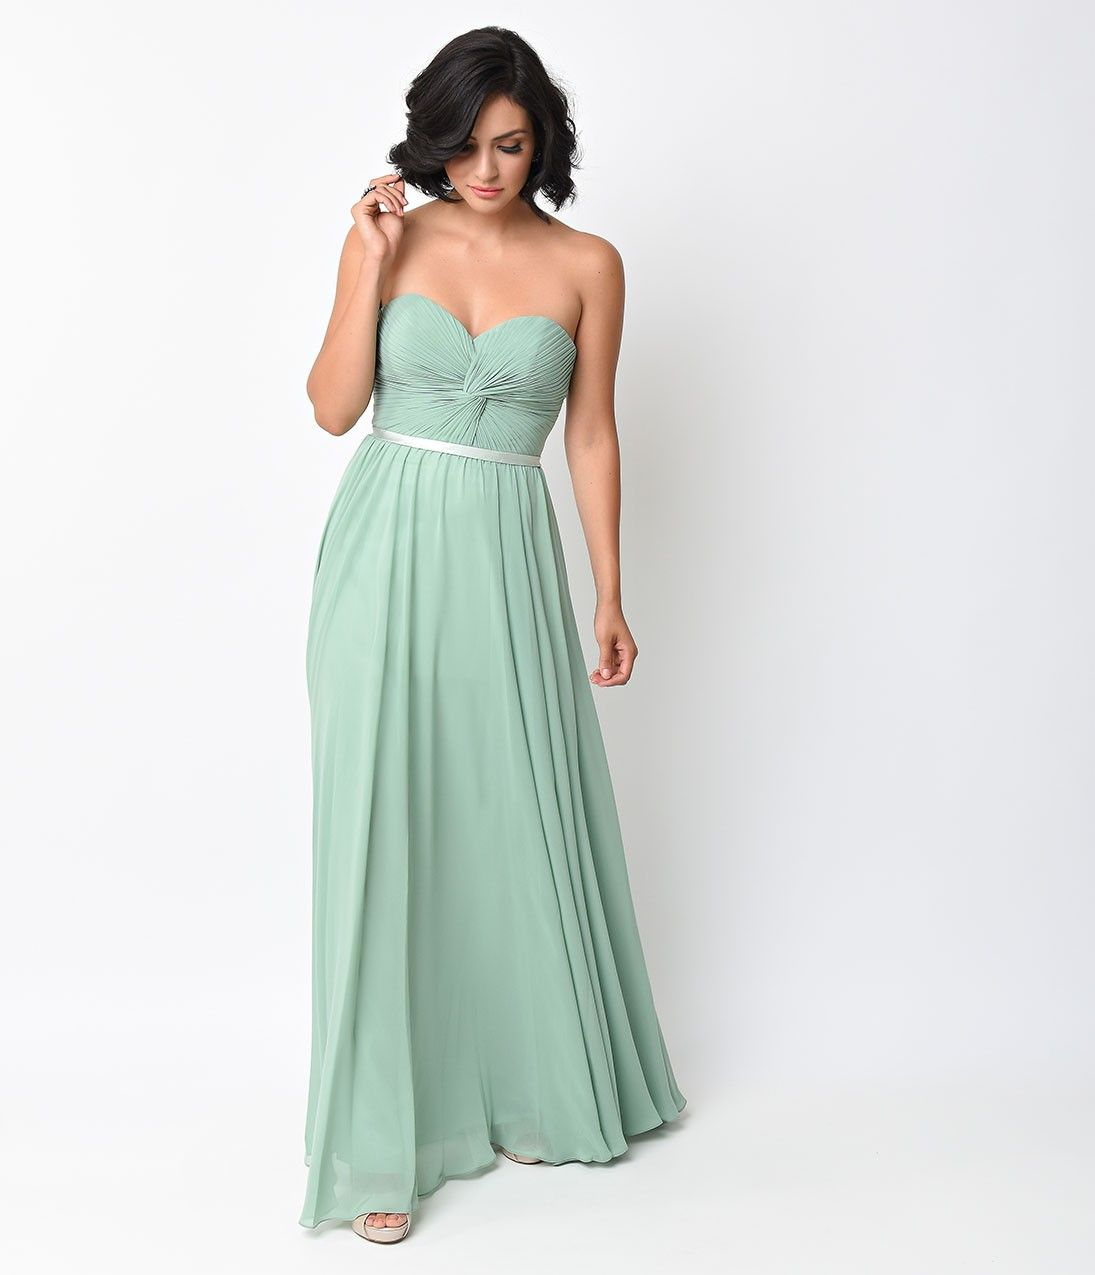 Sage green chiffon strapless sweetheart corset long gown corset sage green chiffon strapless sweetheart corset long gown ombrellifo Gallery